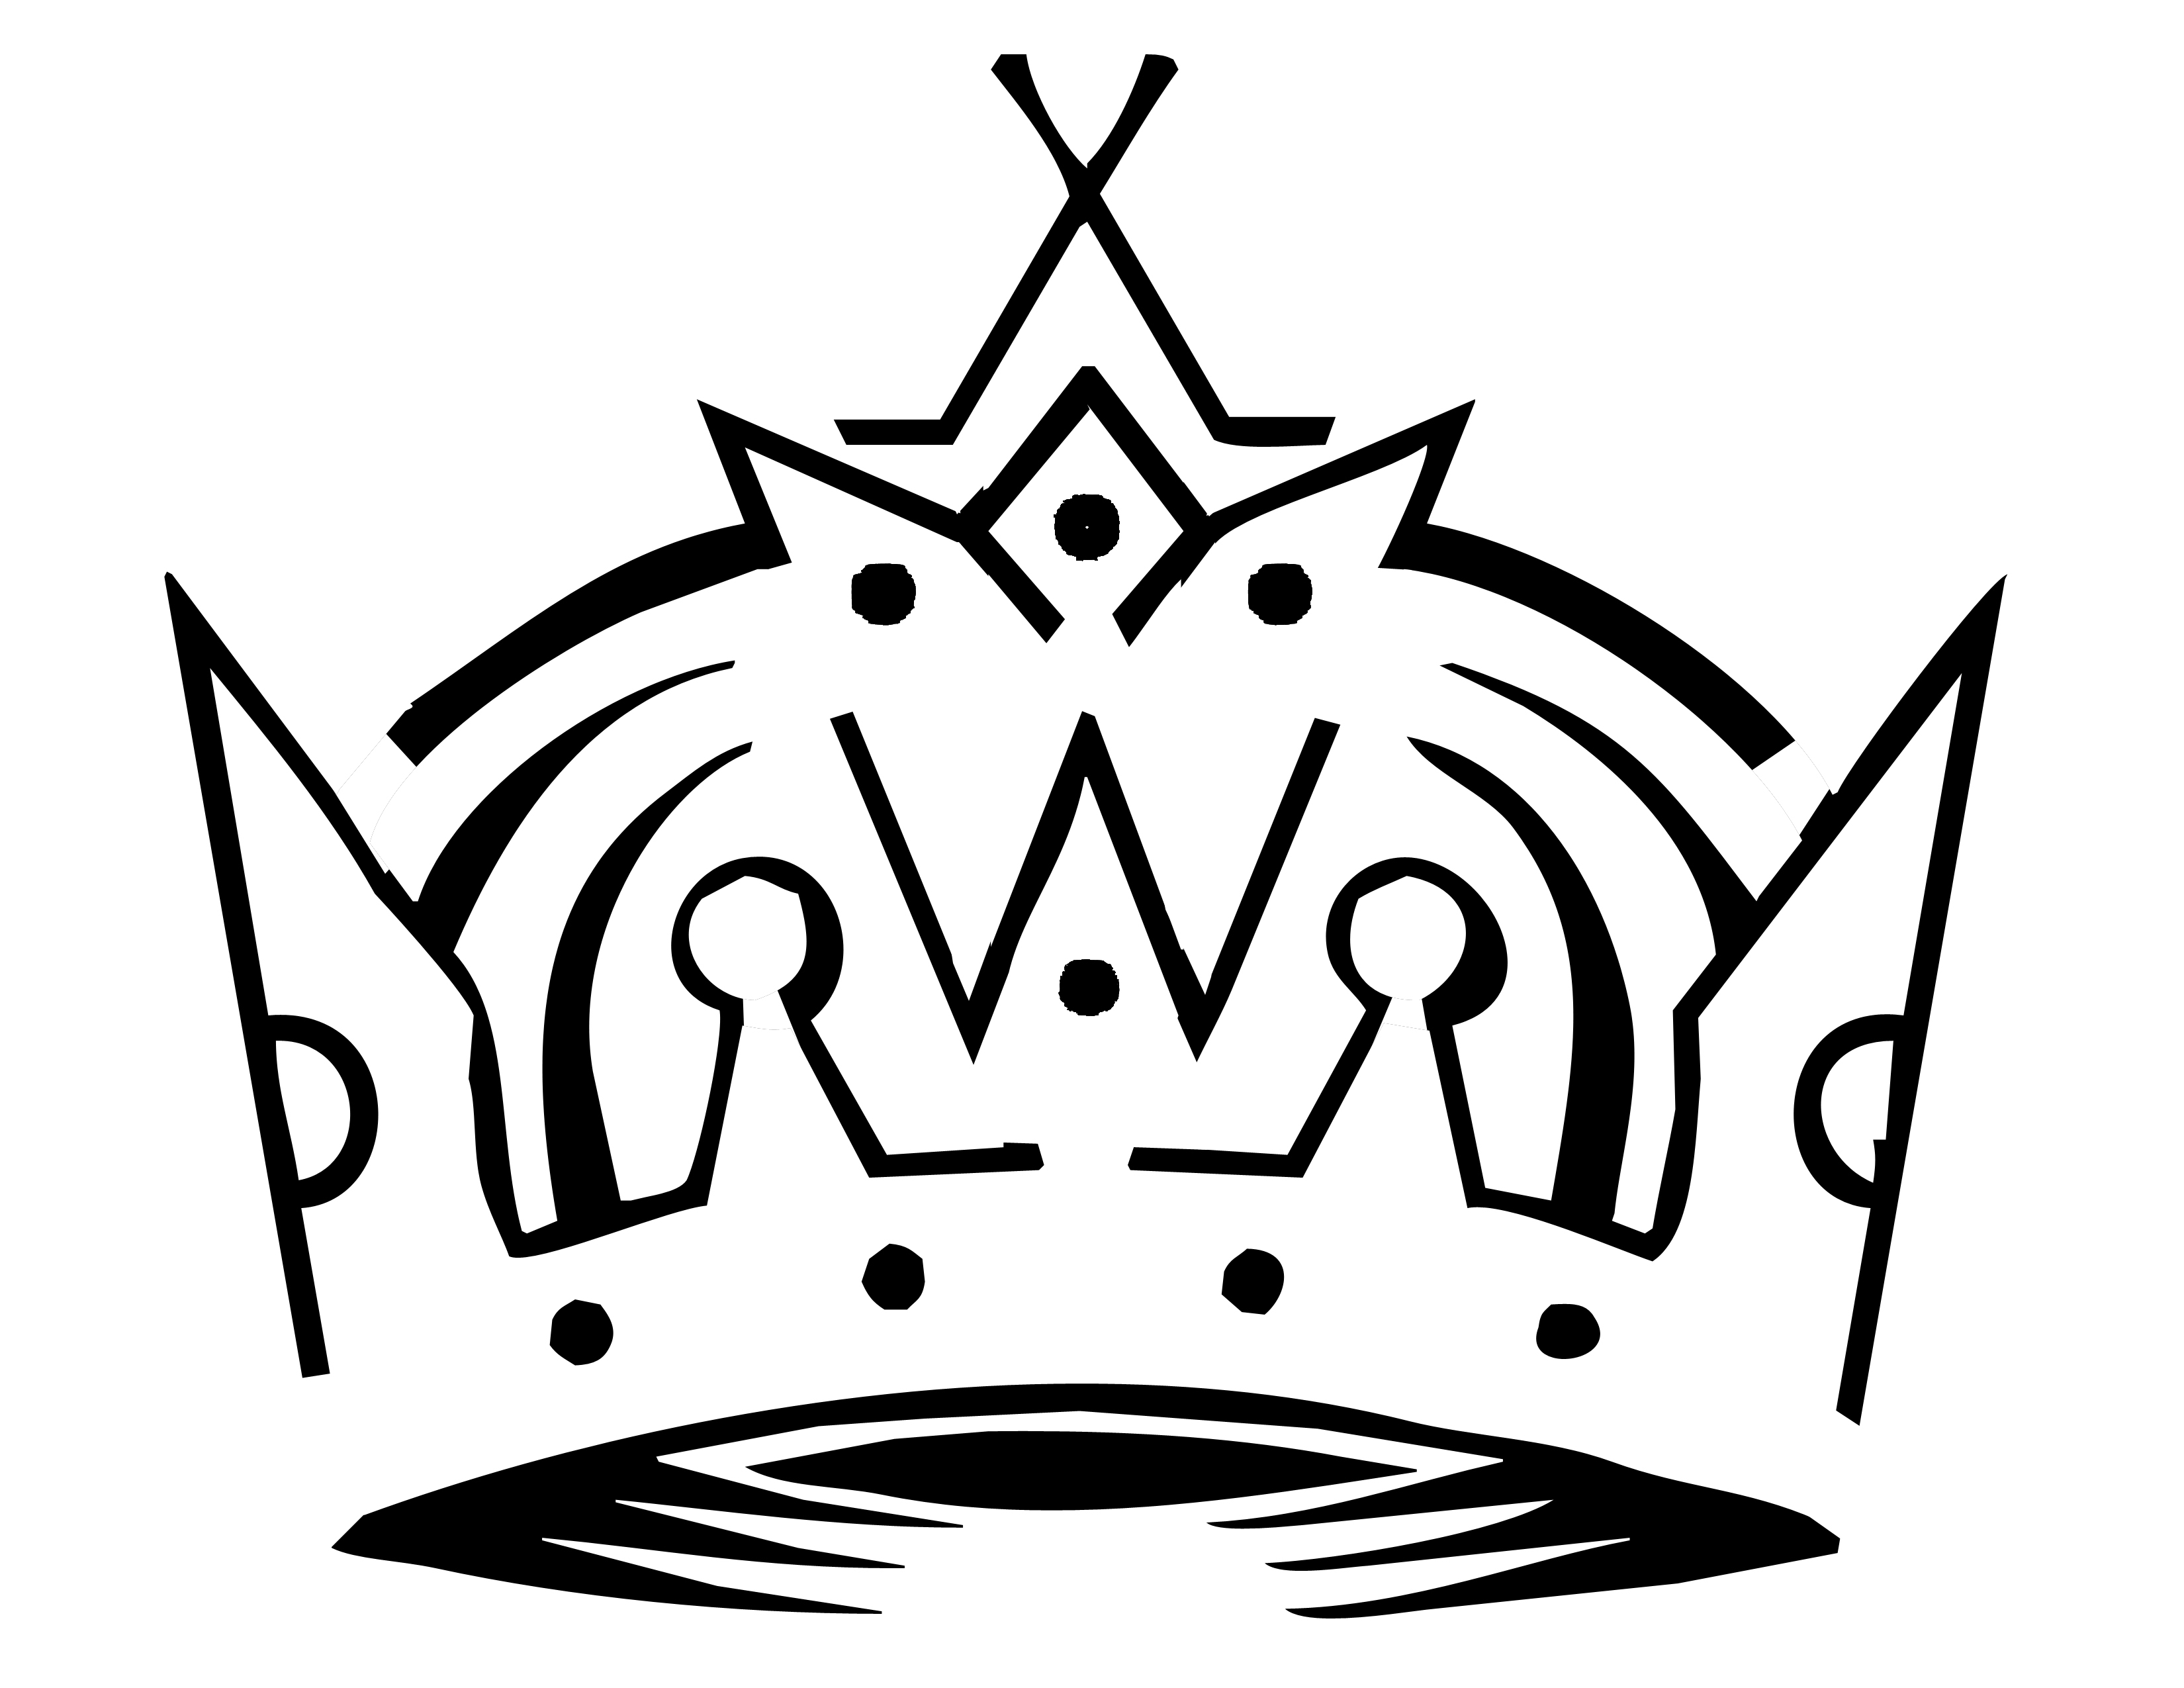 3300x2550 Graffiti Crown Drawings How To Draw A Crown